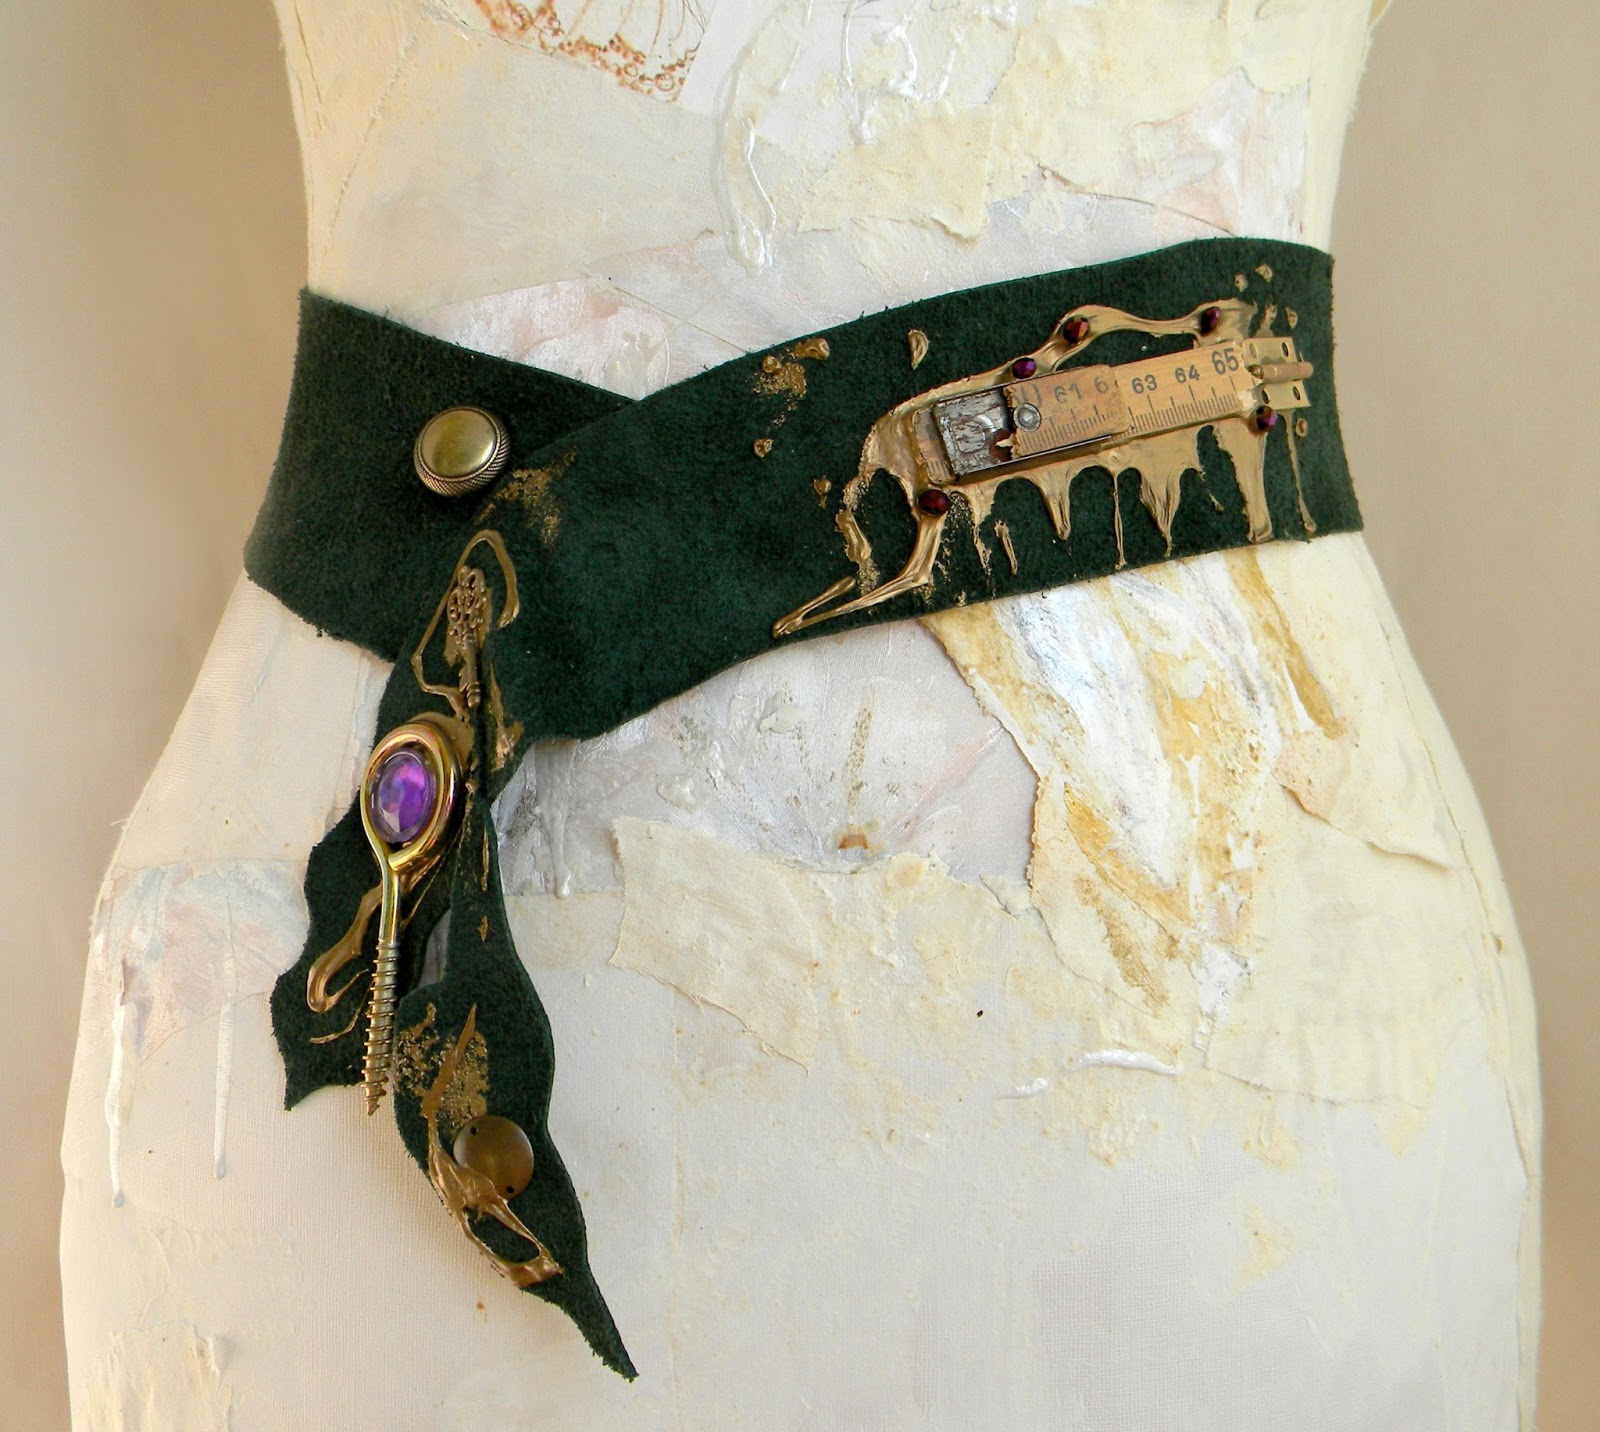 Unique Handmade Waist Belt Sash Leather Fashion Steampunk Original Handcrafted